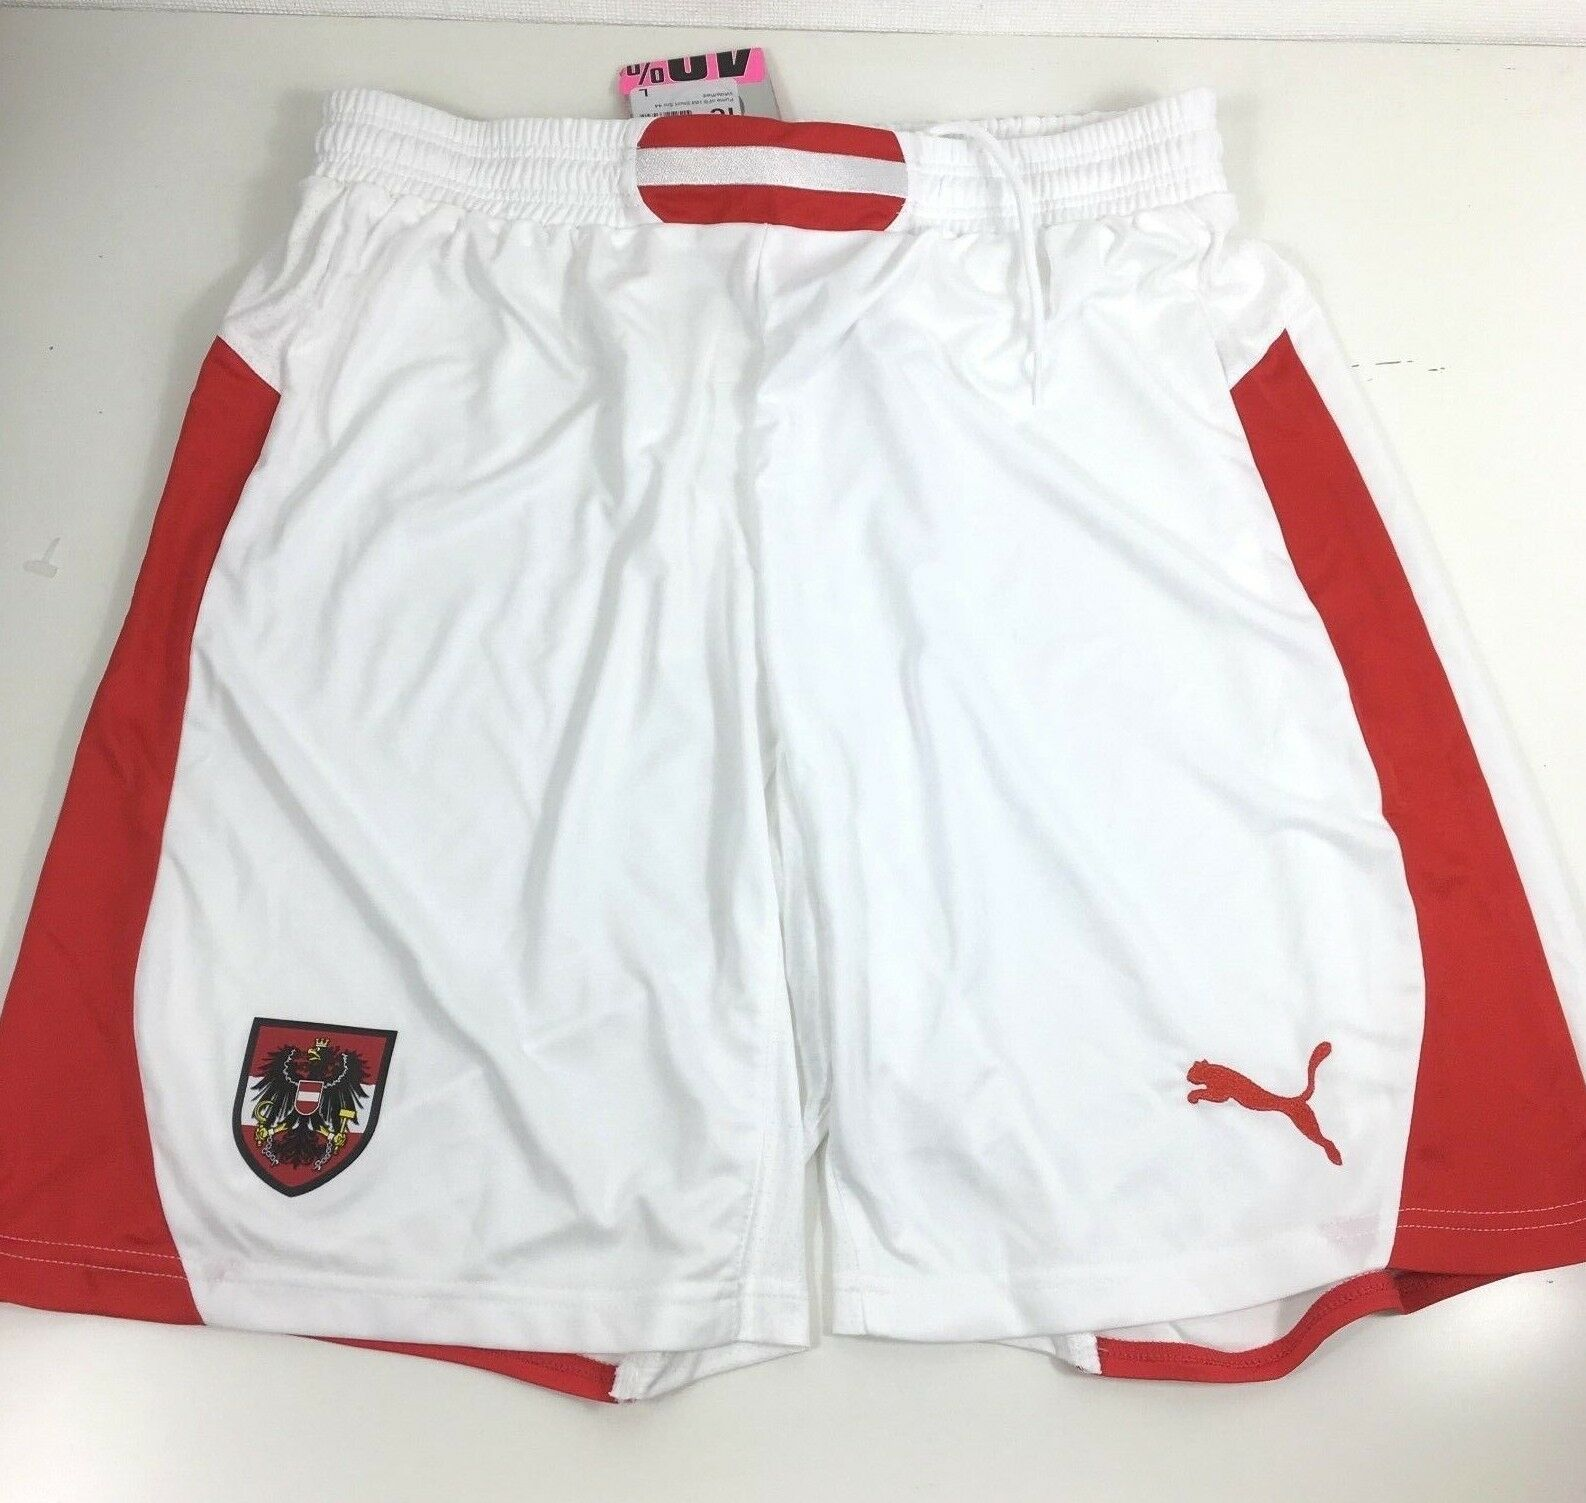 Puma Austria Home Mens Football Shorts Size Large White Red R543-3